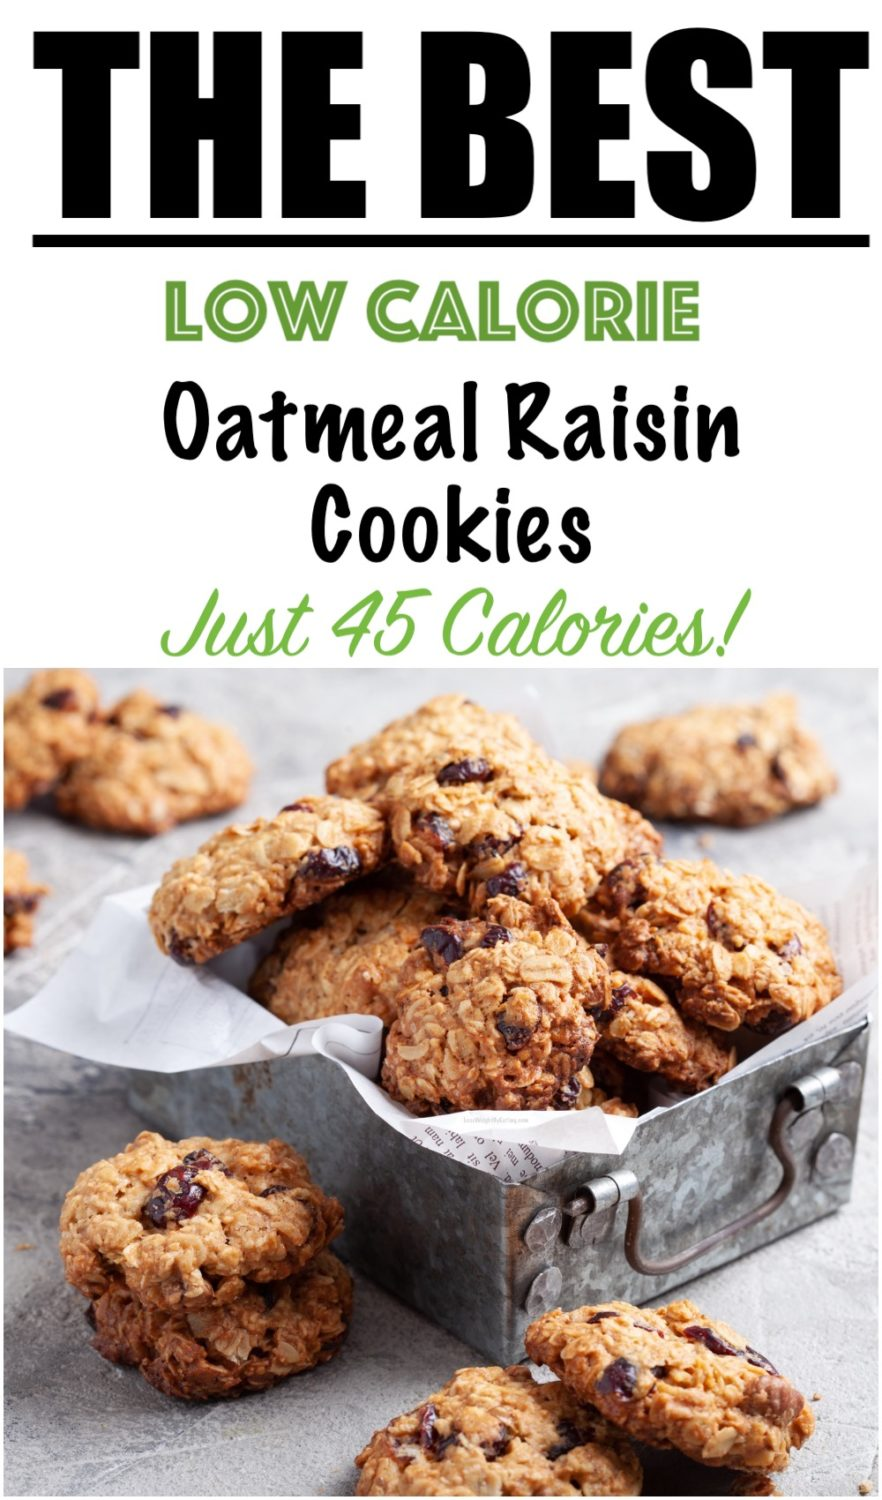 Healthy Recipe for Oatmeal Raisin Cookies